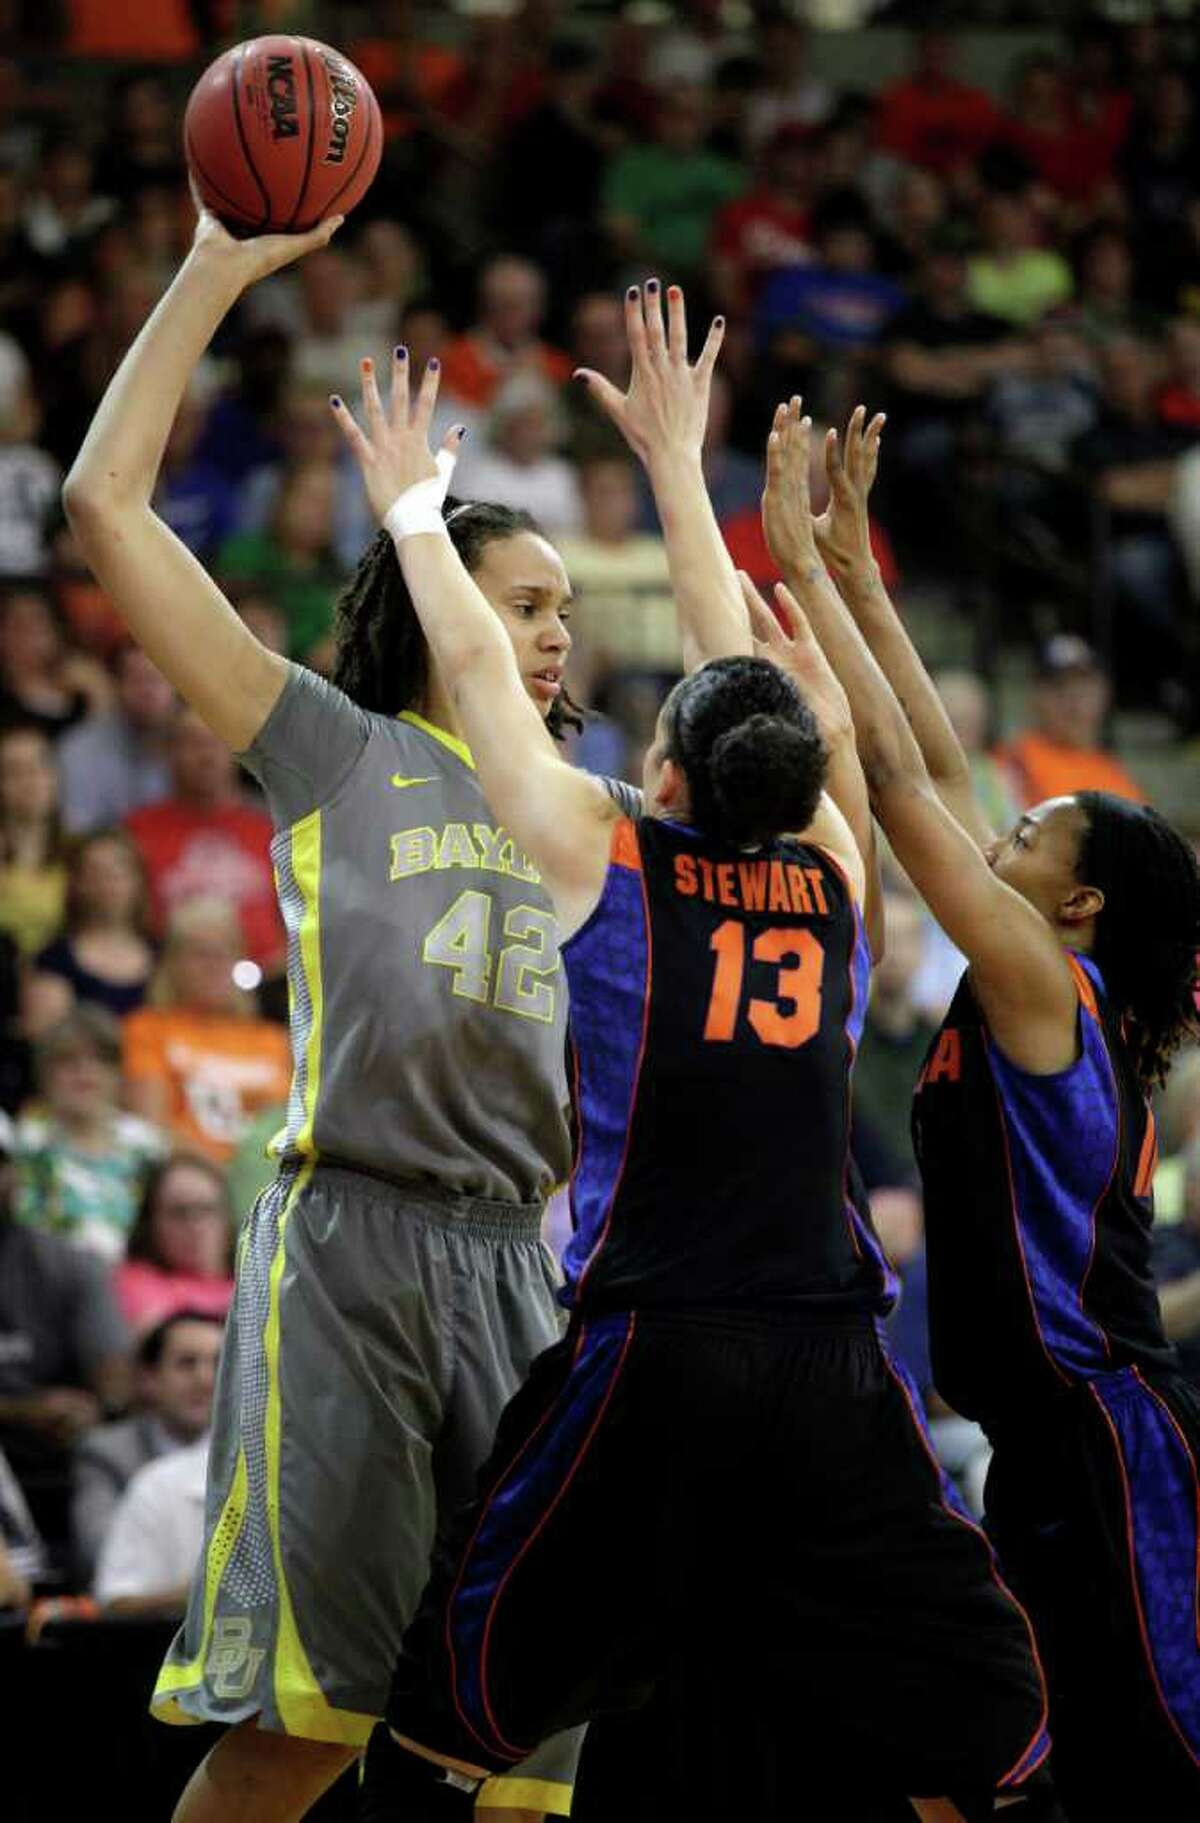 Baylor's Brittney Griner (42) is defended by Florida's Azania Stewart (13) and Deana Allen during the first half of a second-round NCAA college women's basketball tournament game, Tuesday, March 20, 2012, in Bowling Green, Ohio. (AP Photo/J.D. Pooley)